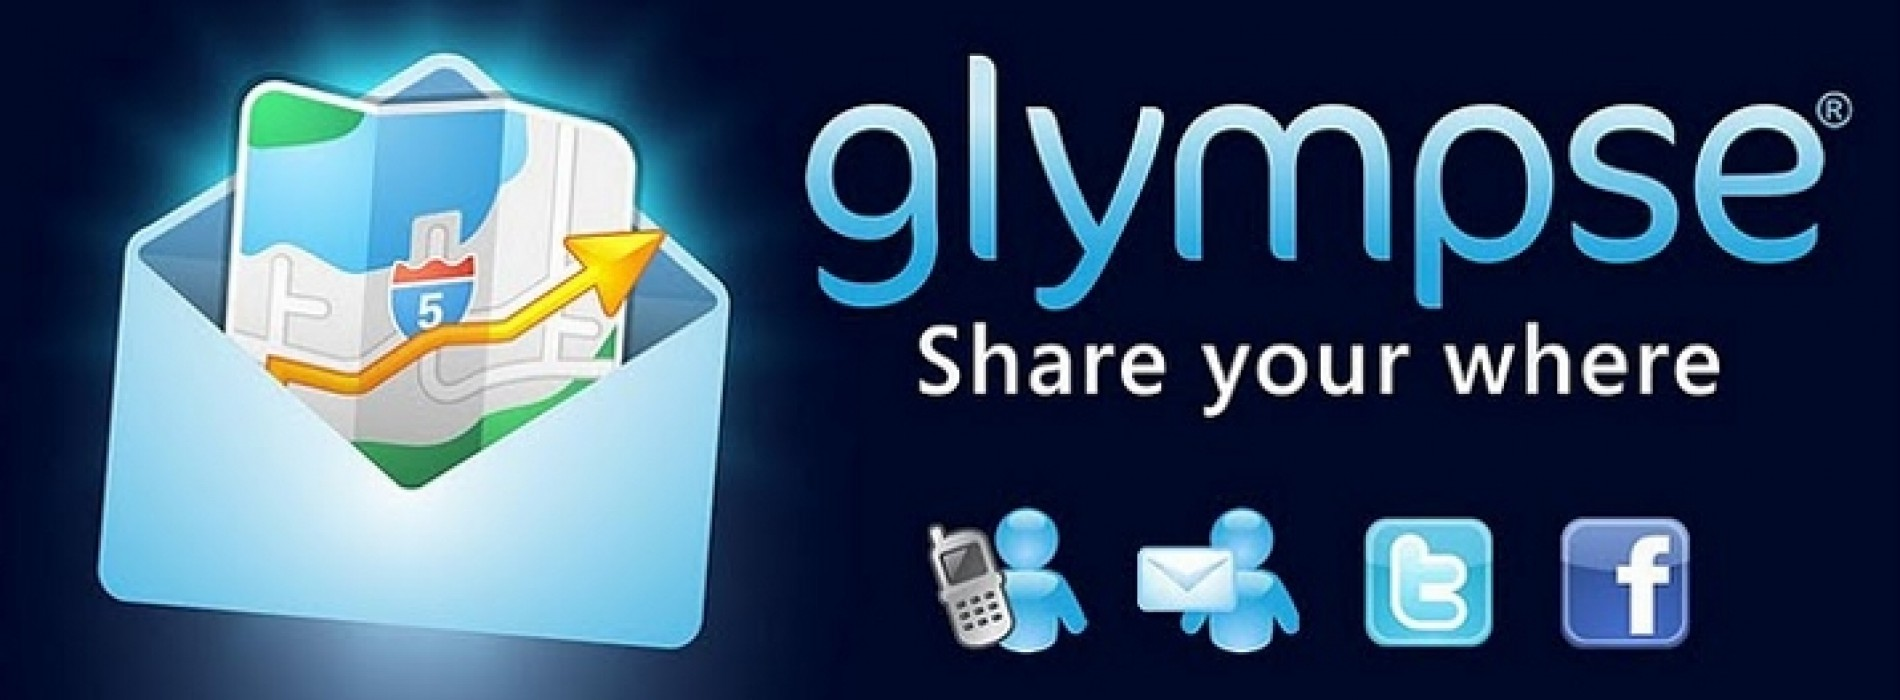 GLYMPSE hits 2 million Android downloads and plans to bring new features in update